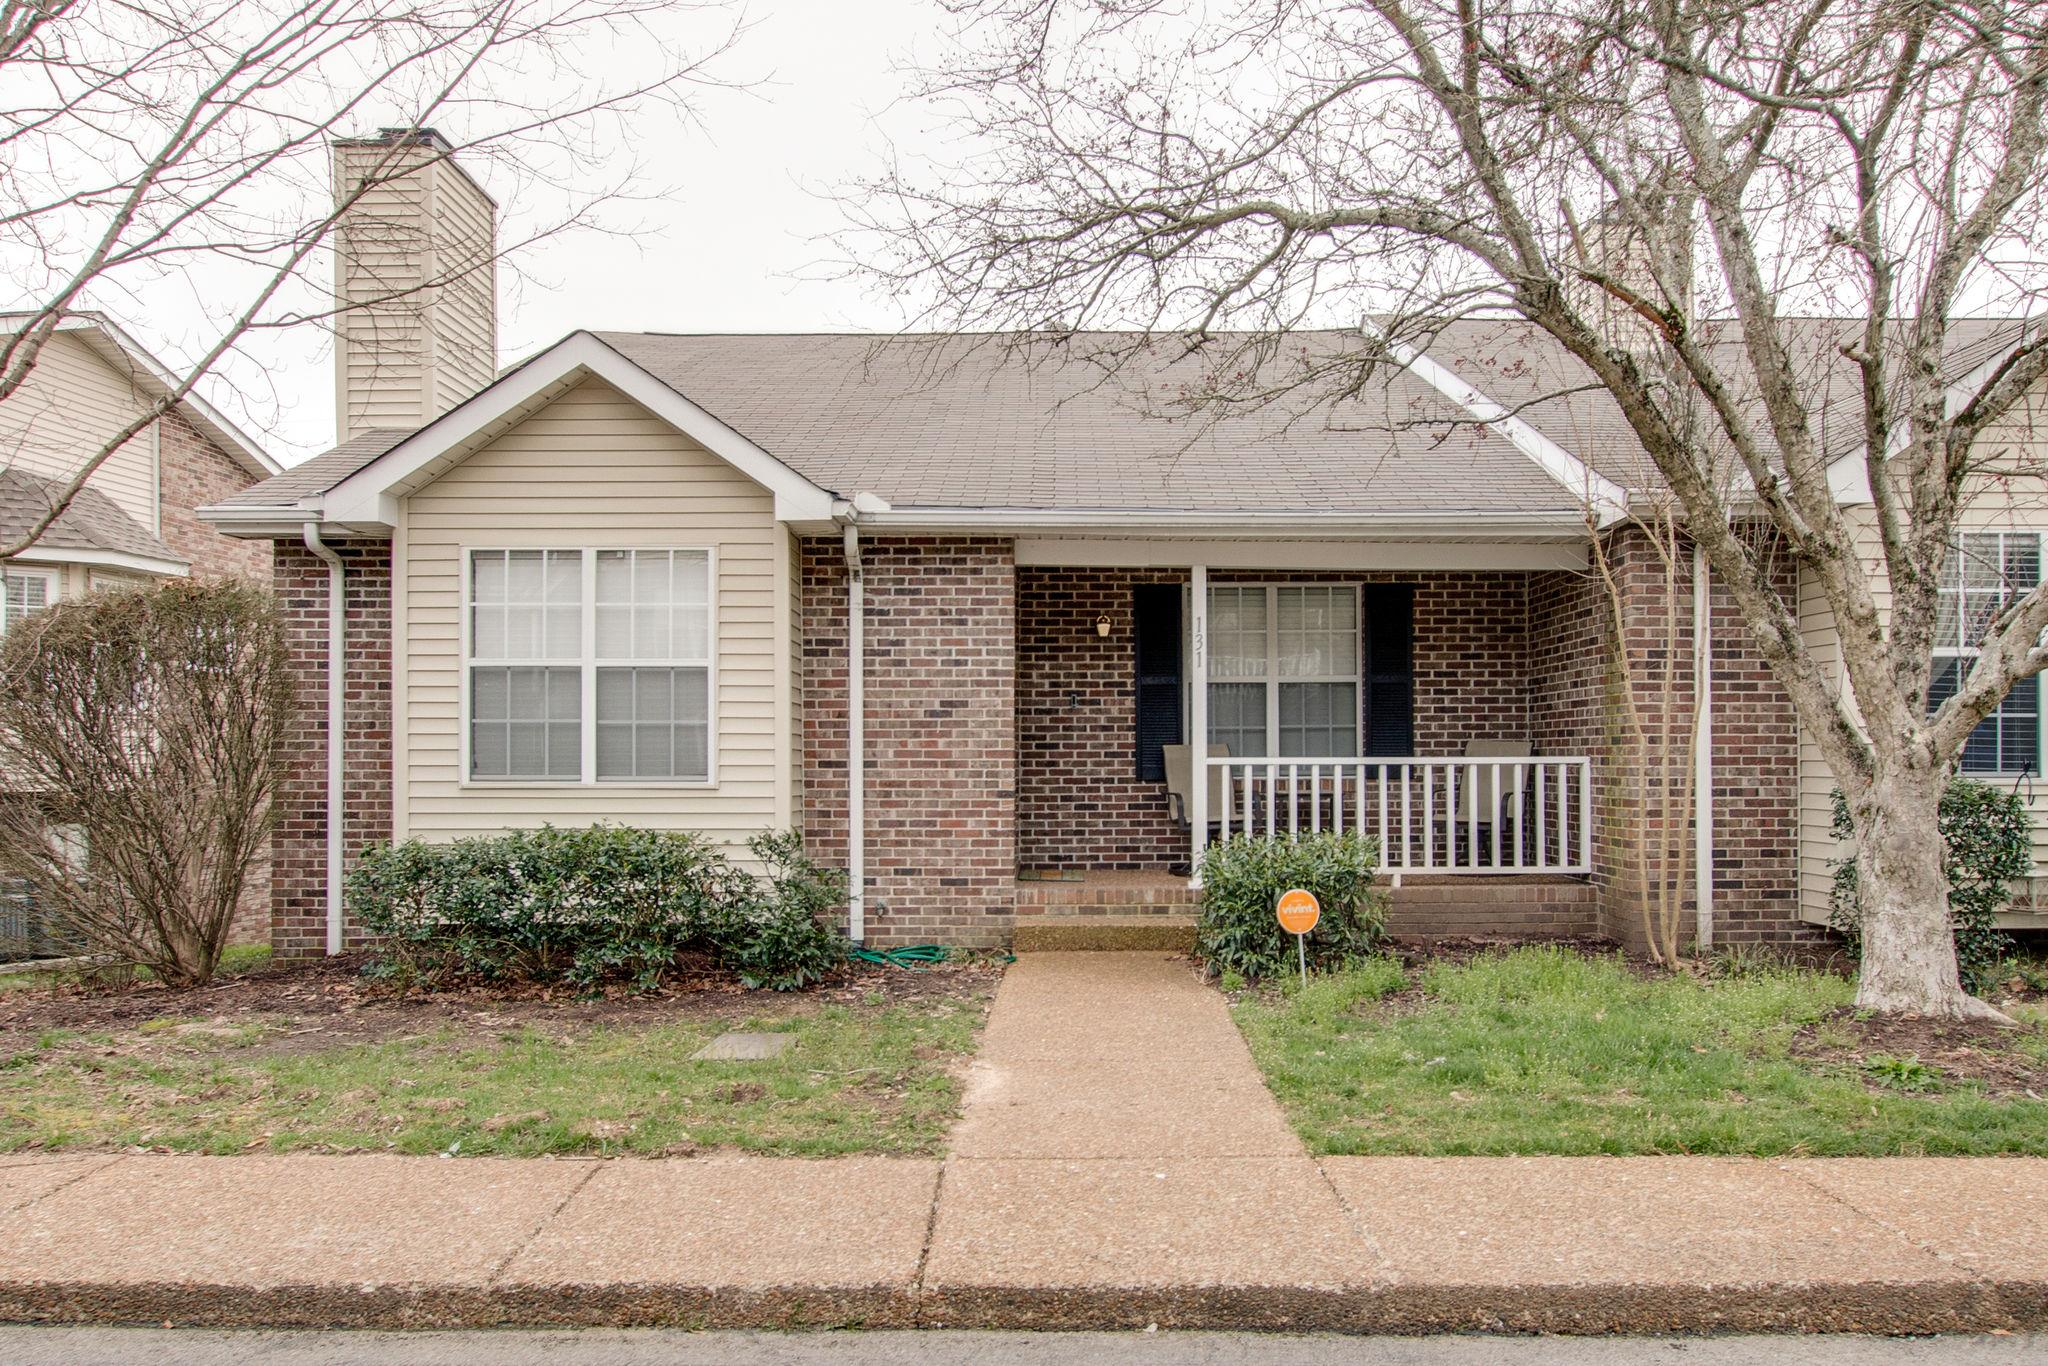 131 Pepper Ridge Cir, Nashville-Antioch in Davidson County County, TN 37013 Home for Sale